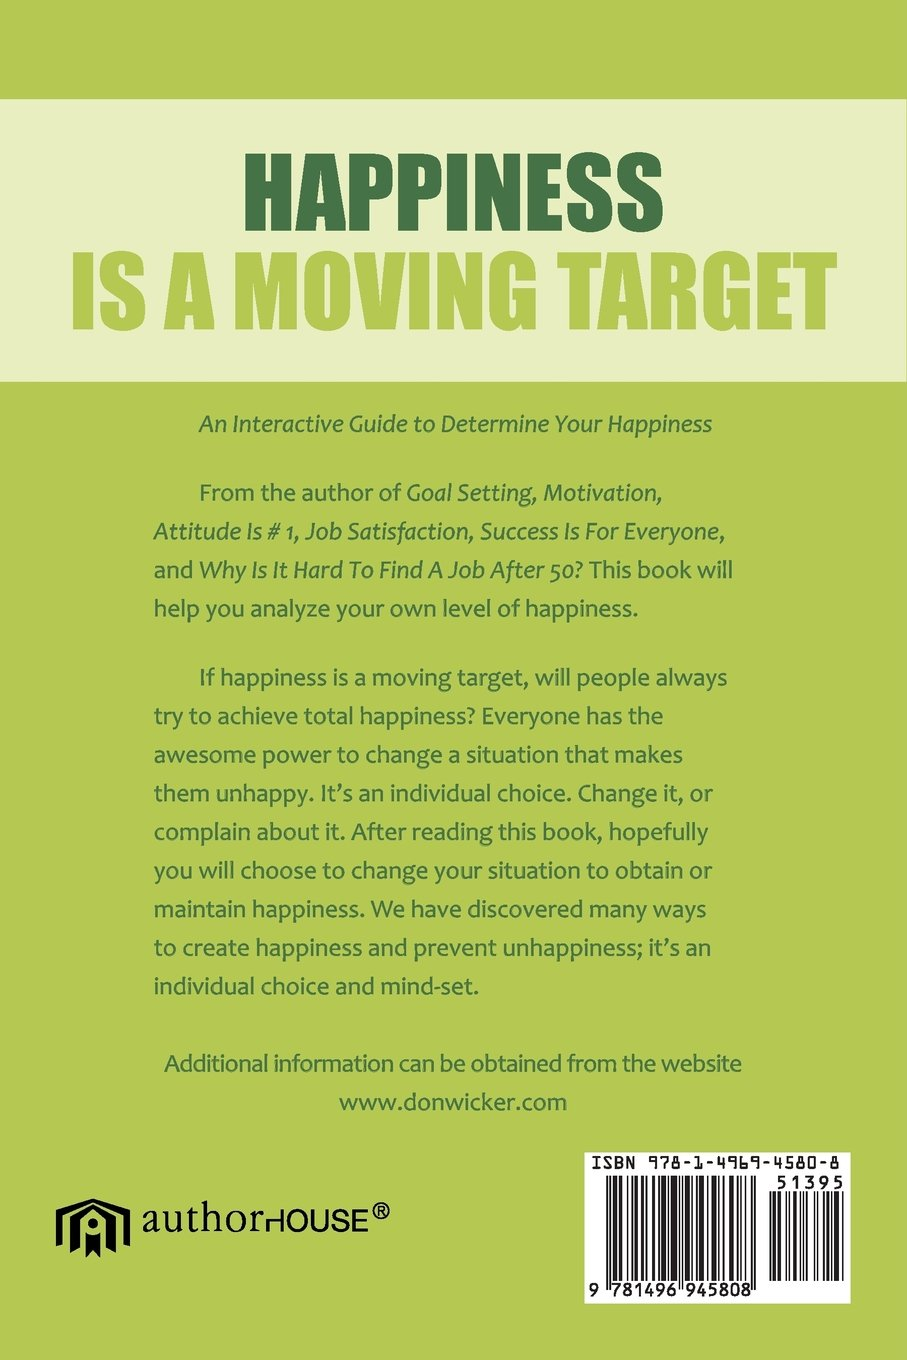 happiness is a moving target an interactive guide to determining happiness is a moving target an interactive guide to determining your happiness don wicker 9781496945808 com books